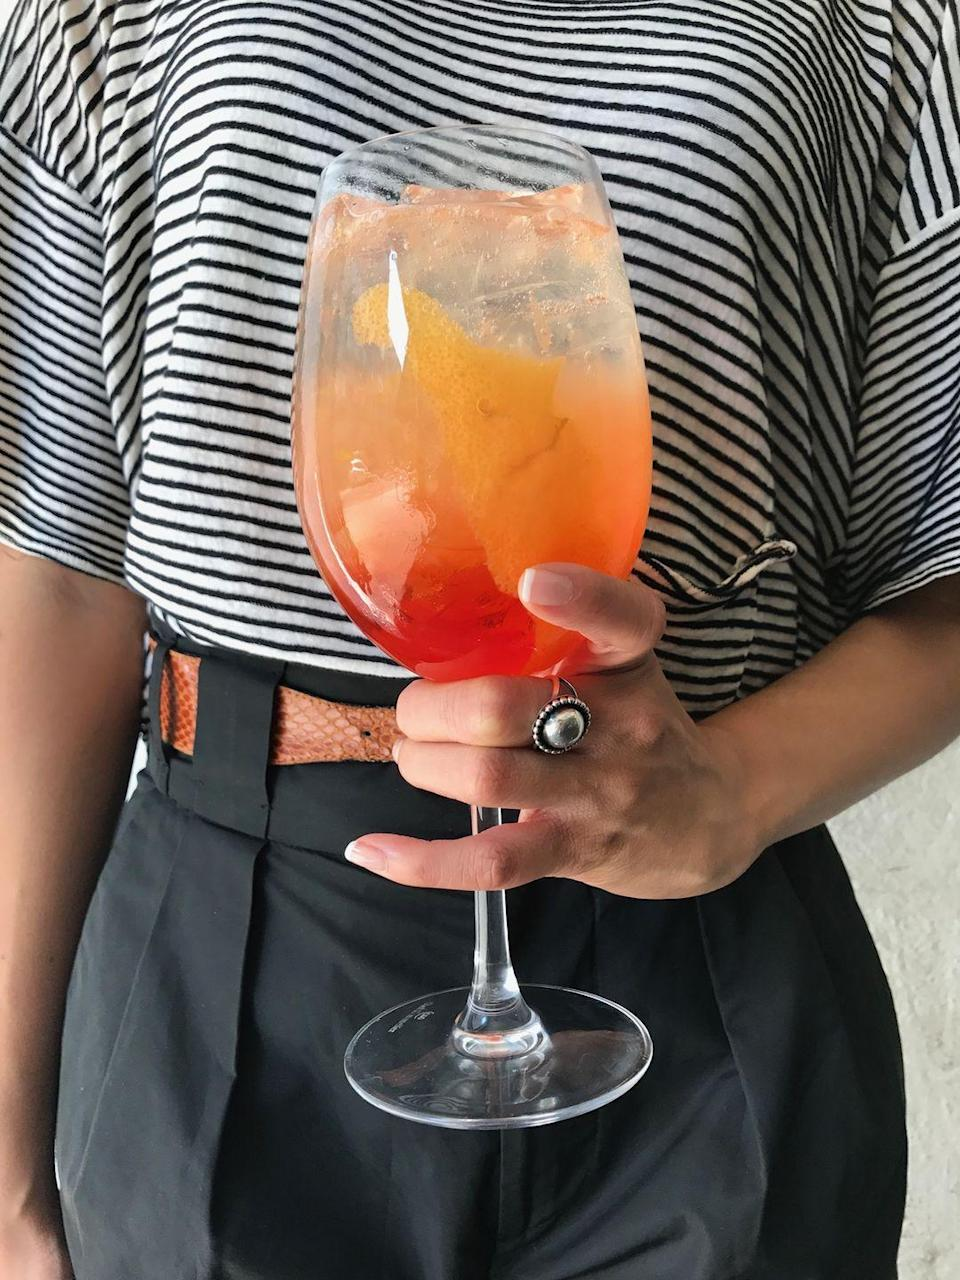 """<p>This refreshing libation comes from <a href=""""http://barbutonyc.com/index.php"""" rel=""""nofollow noopener"""" target=""""_blank"""" data-ylk=""""slk:Barbuto"""" class=""""link rapid-noclick-resp"""">Barbuto</a>, the iconic West Village restaurant. The 1919 Cocktail was the first drink bartender Tyan Cray put on the menu in 2004, and it has remained a mainstay ever since. </p><p><strong>Ingredients:</strong></p><p> 1 1⁄2 ounces Cappelletti Aperitivo wine</p><p>2 ounces fresh grapefruit juice</p><p>4 to 5 ounces dry Prosecco</p><p>Grapefruit peel, for garnish</p><p><strong>Directions:</strong></p><p>In a large wineglass filled with ice, mix the Cappelletti, grapefruit juice, and Prosecco. Stir and express one large grapefruit peel over the glass. Garnish with the peel. </p>"""